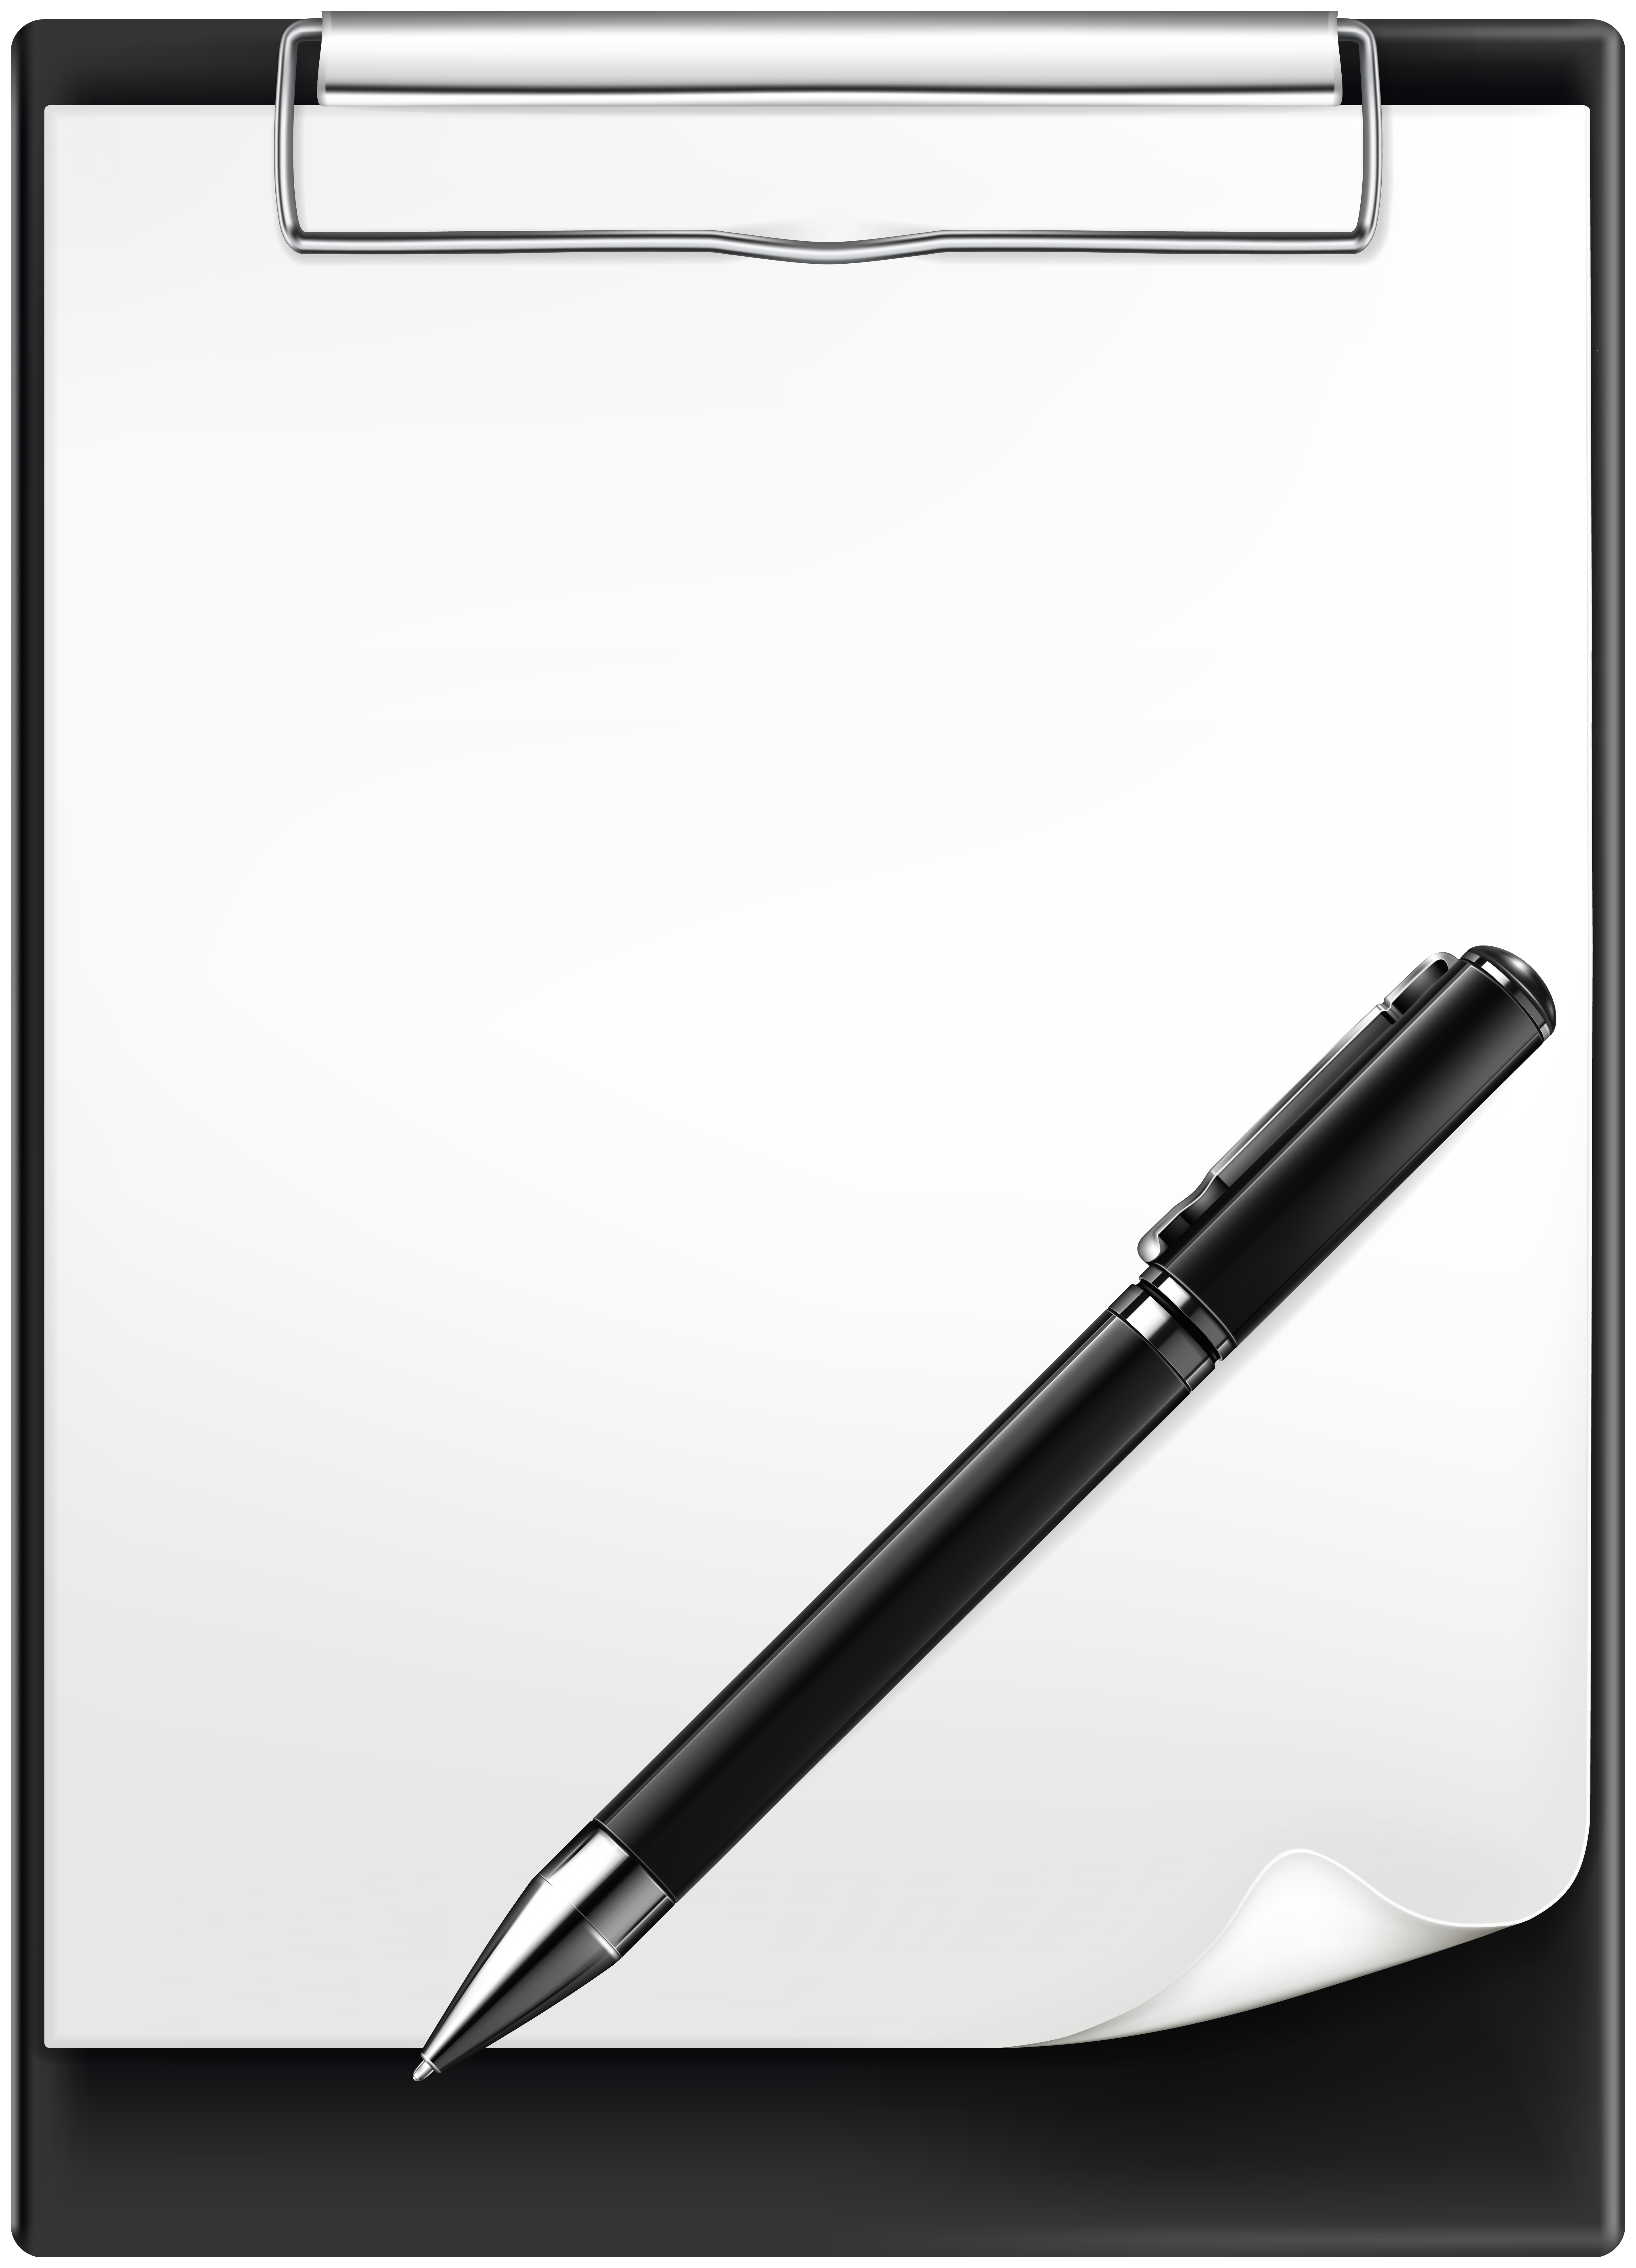 Clipboard and Pen PNG Clip Art Image.